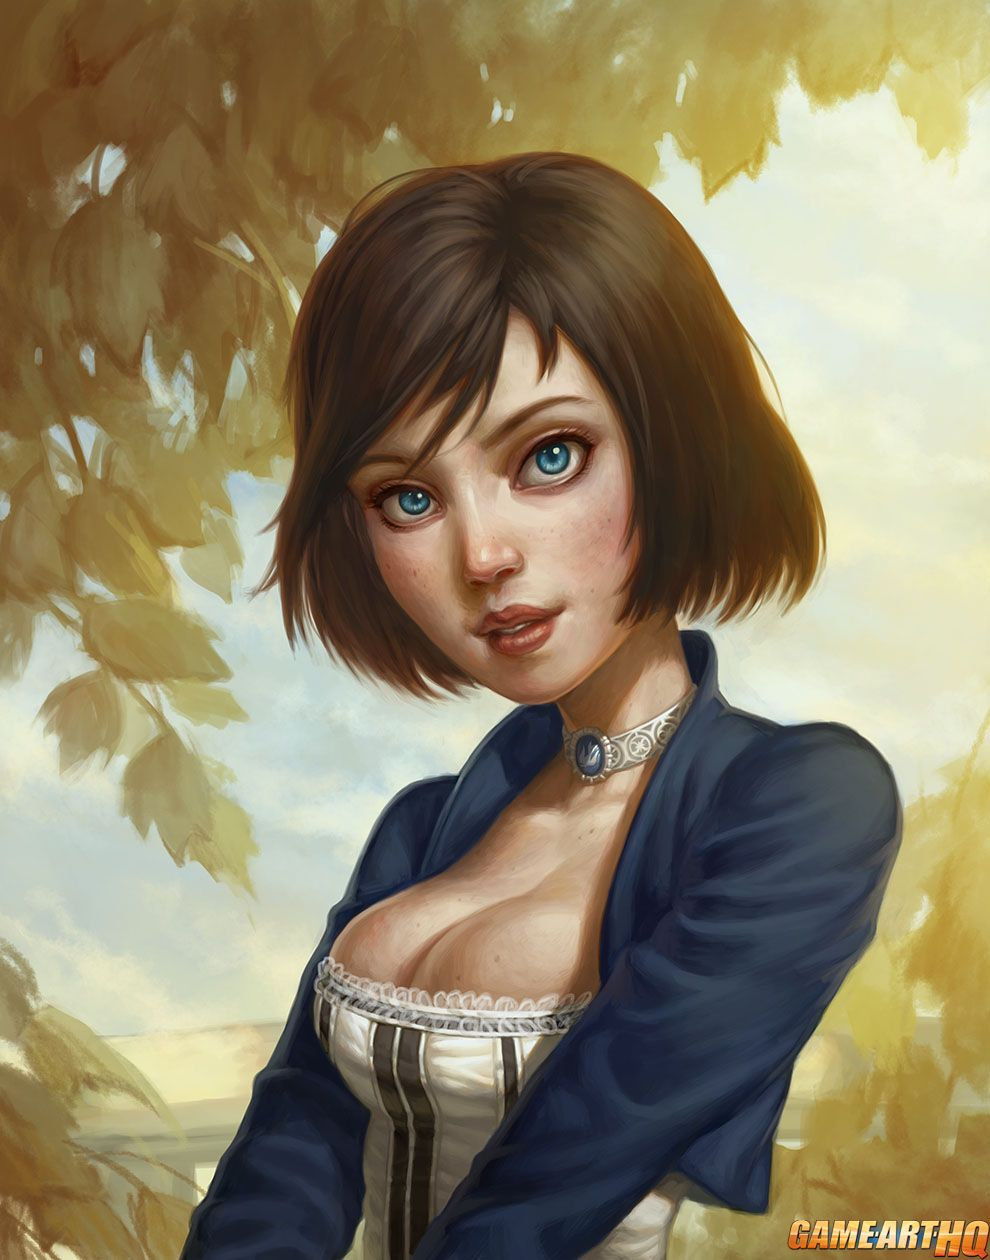 Elizabeth-Bioshock-Art-by-Speeh.jpg (990×1260)